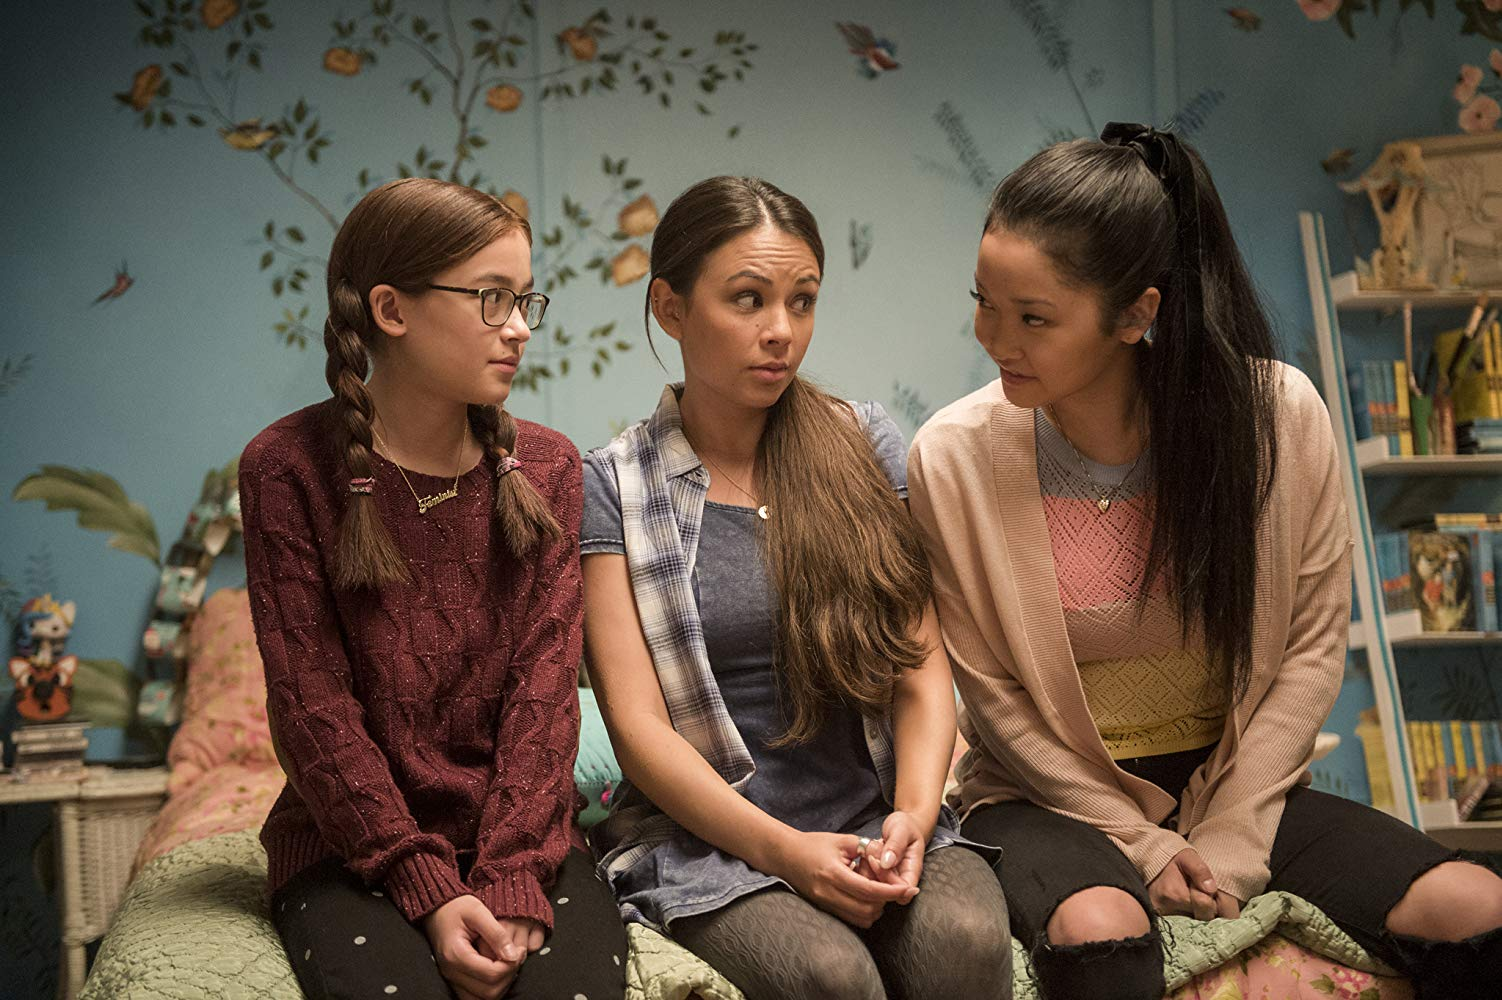 Kitty (  Anna Cathcart  ), Margot (  Janel Parrish  ) and Lara Jean (  Lana Condor  )in   To All the Boys I've Loved Before  // © Awesomeness Films